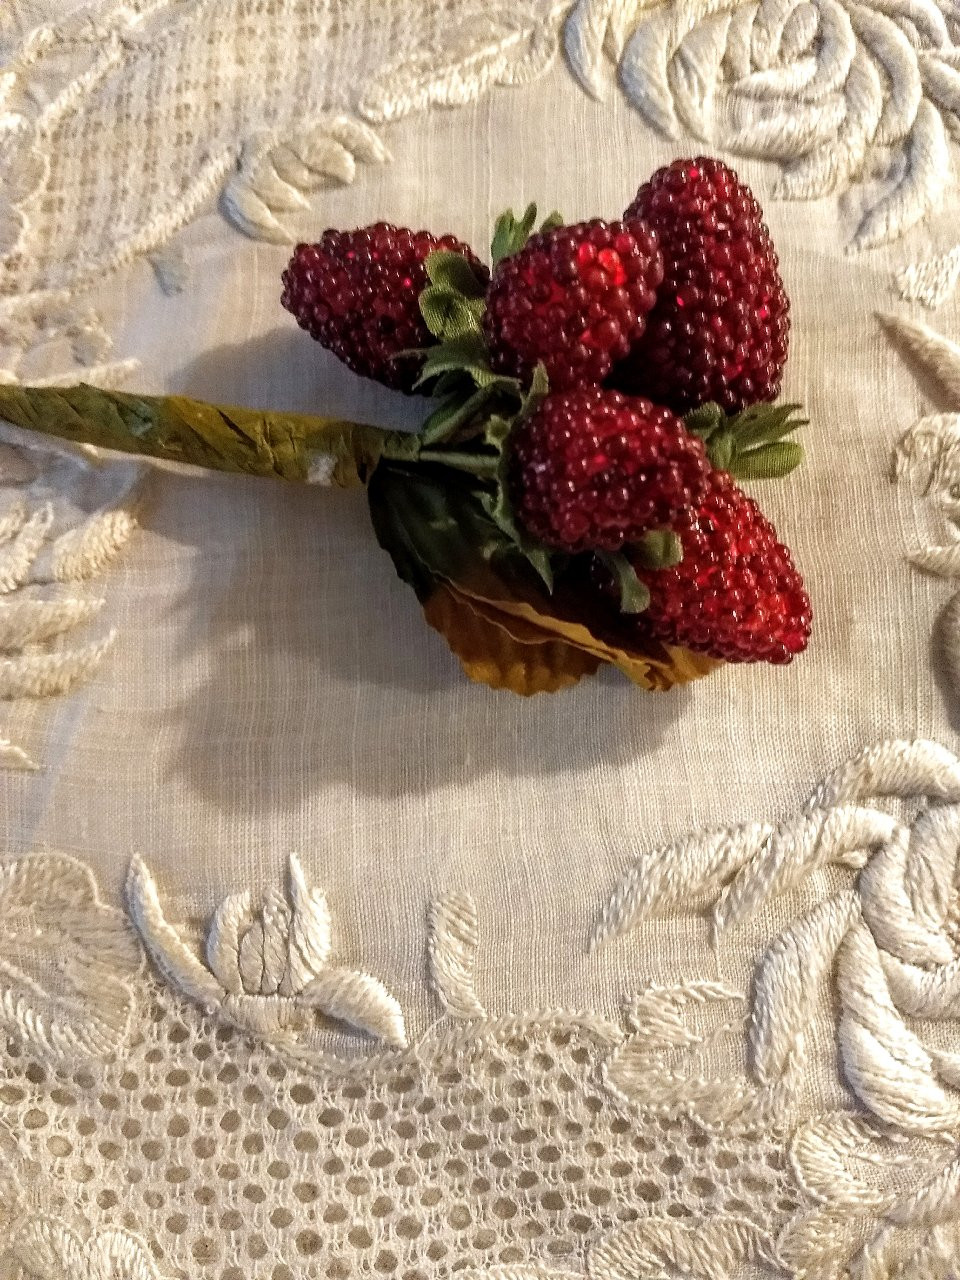 1950s Millinery Dress Artificial Grape Cluster Corsage Fabric Leaves Vintage